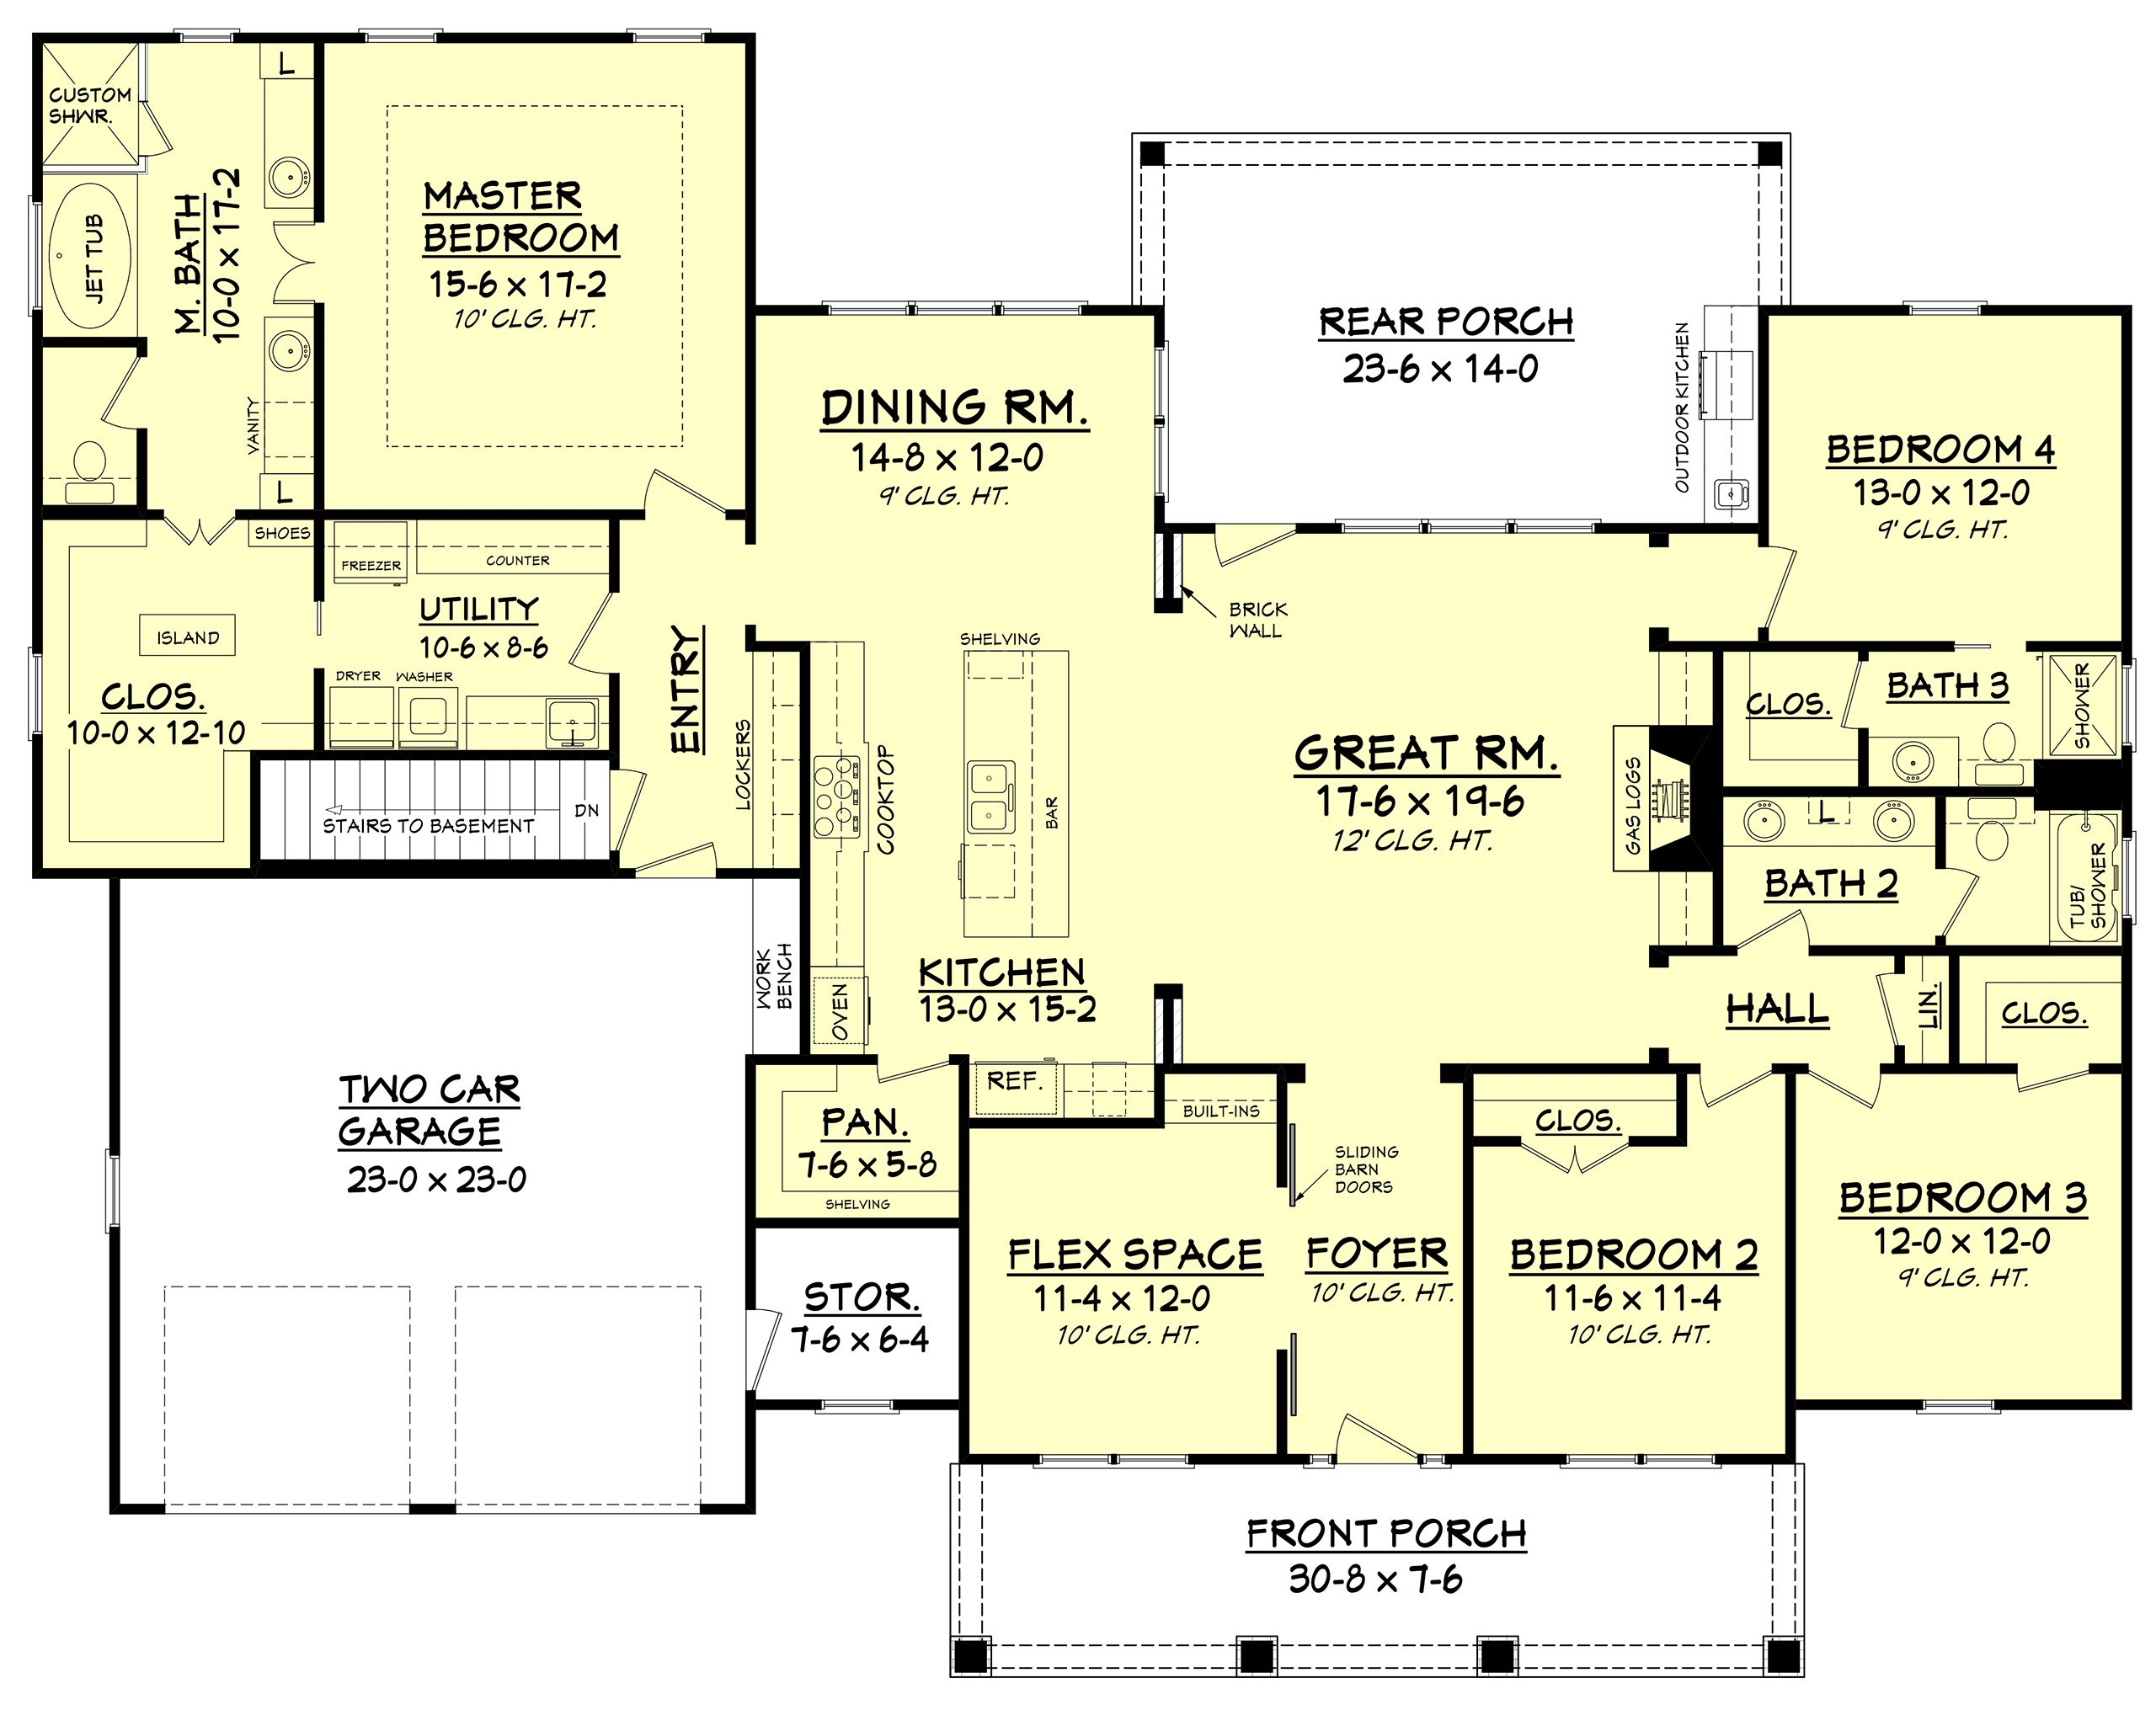 Craftsman Style House Plan 4 Beds 300 Baths 2639 SqFt Plan 430